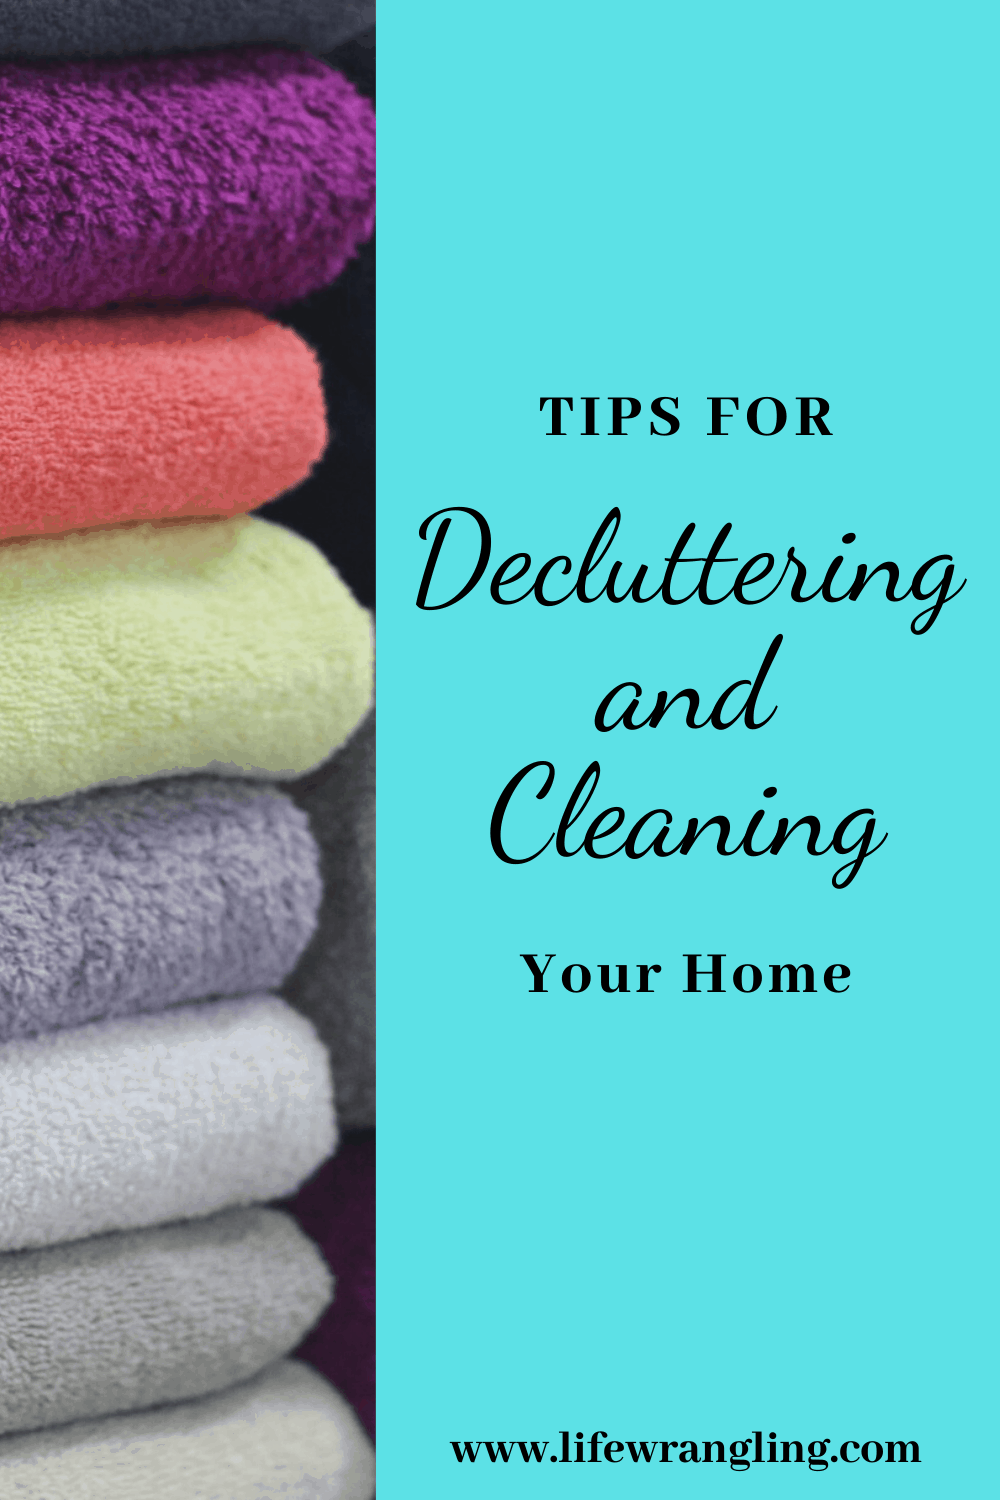 Decluttering and Cleaning